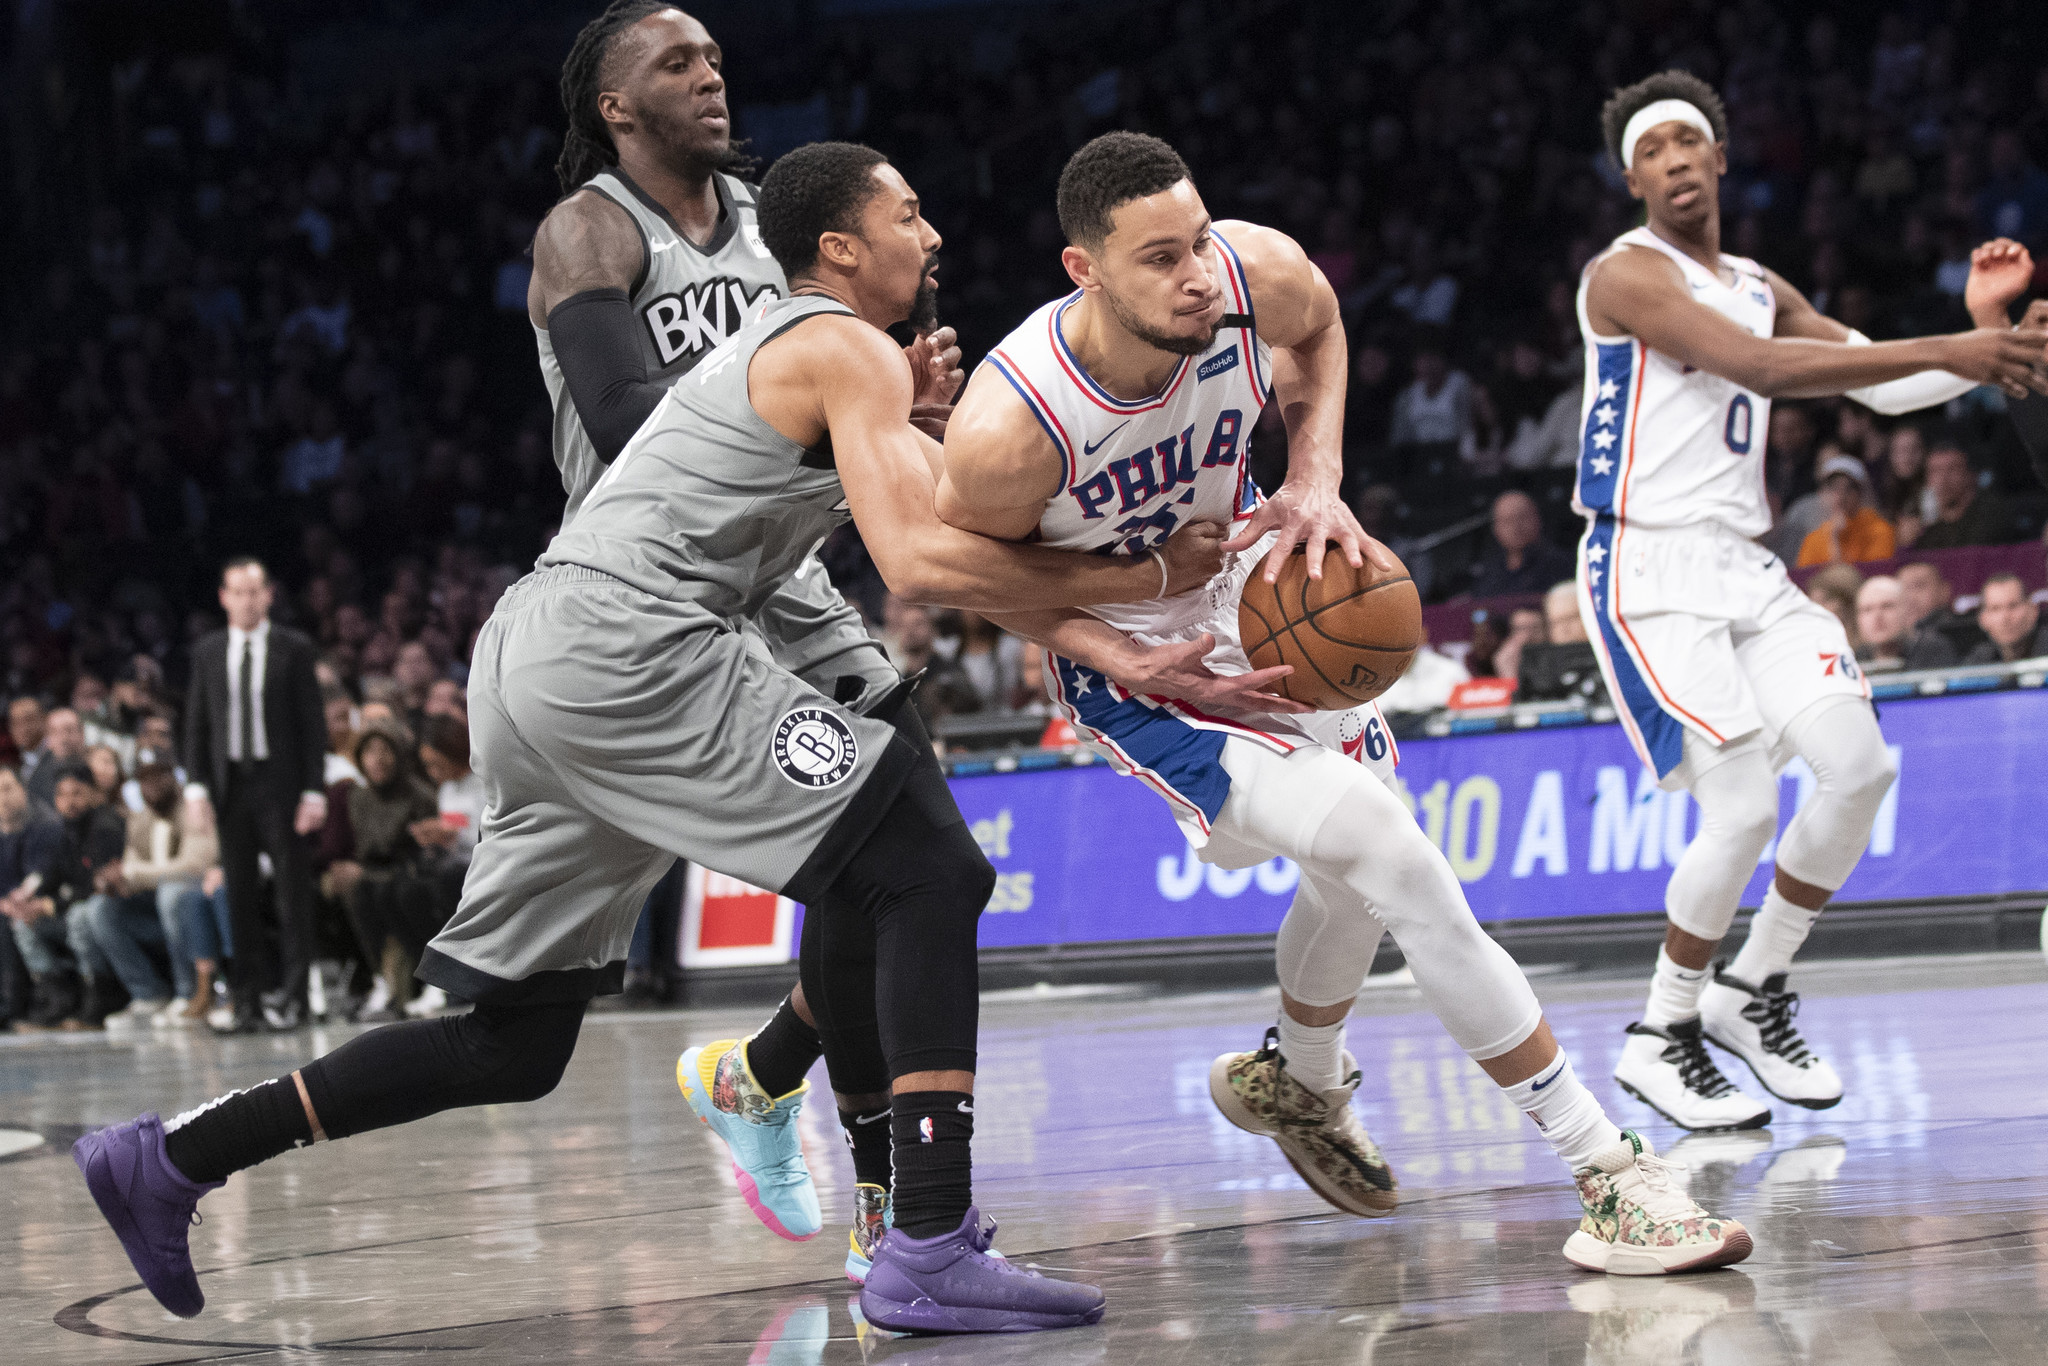 Injuries continue to define the Nets in disappointing loss to Sixers